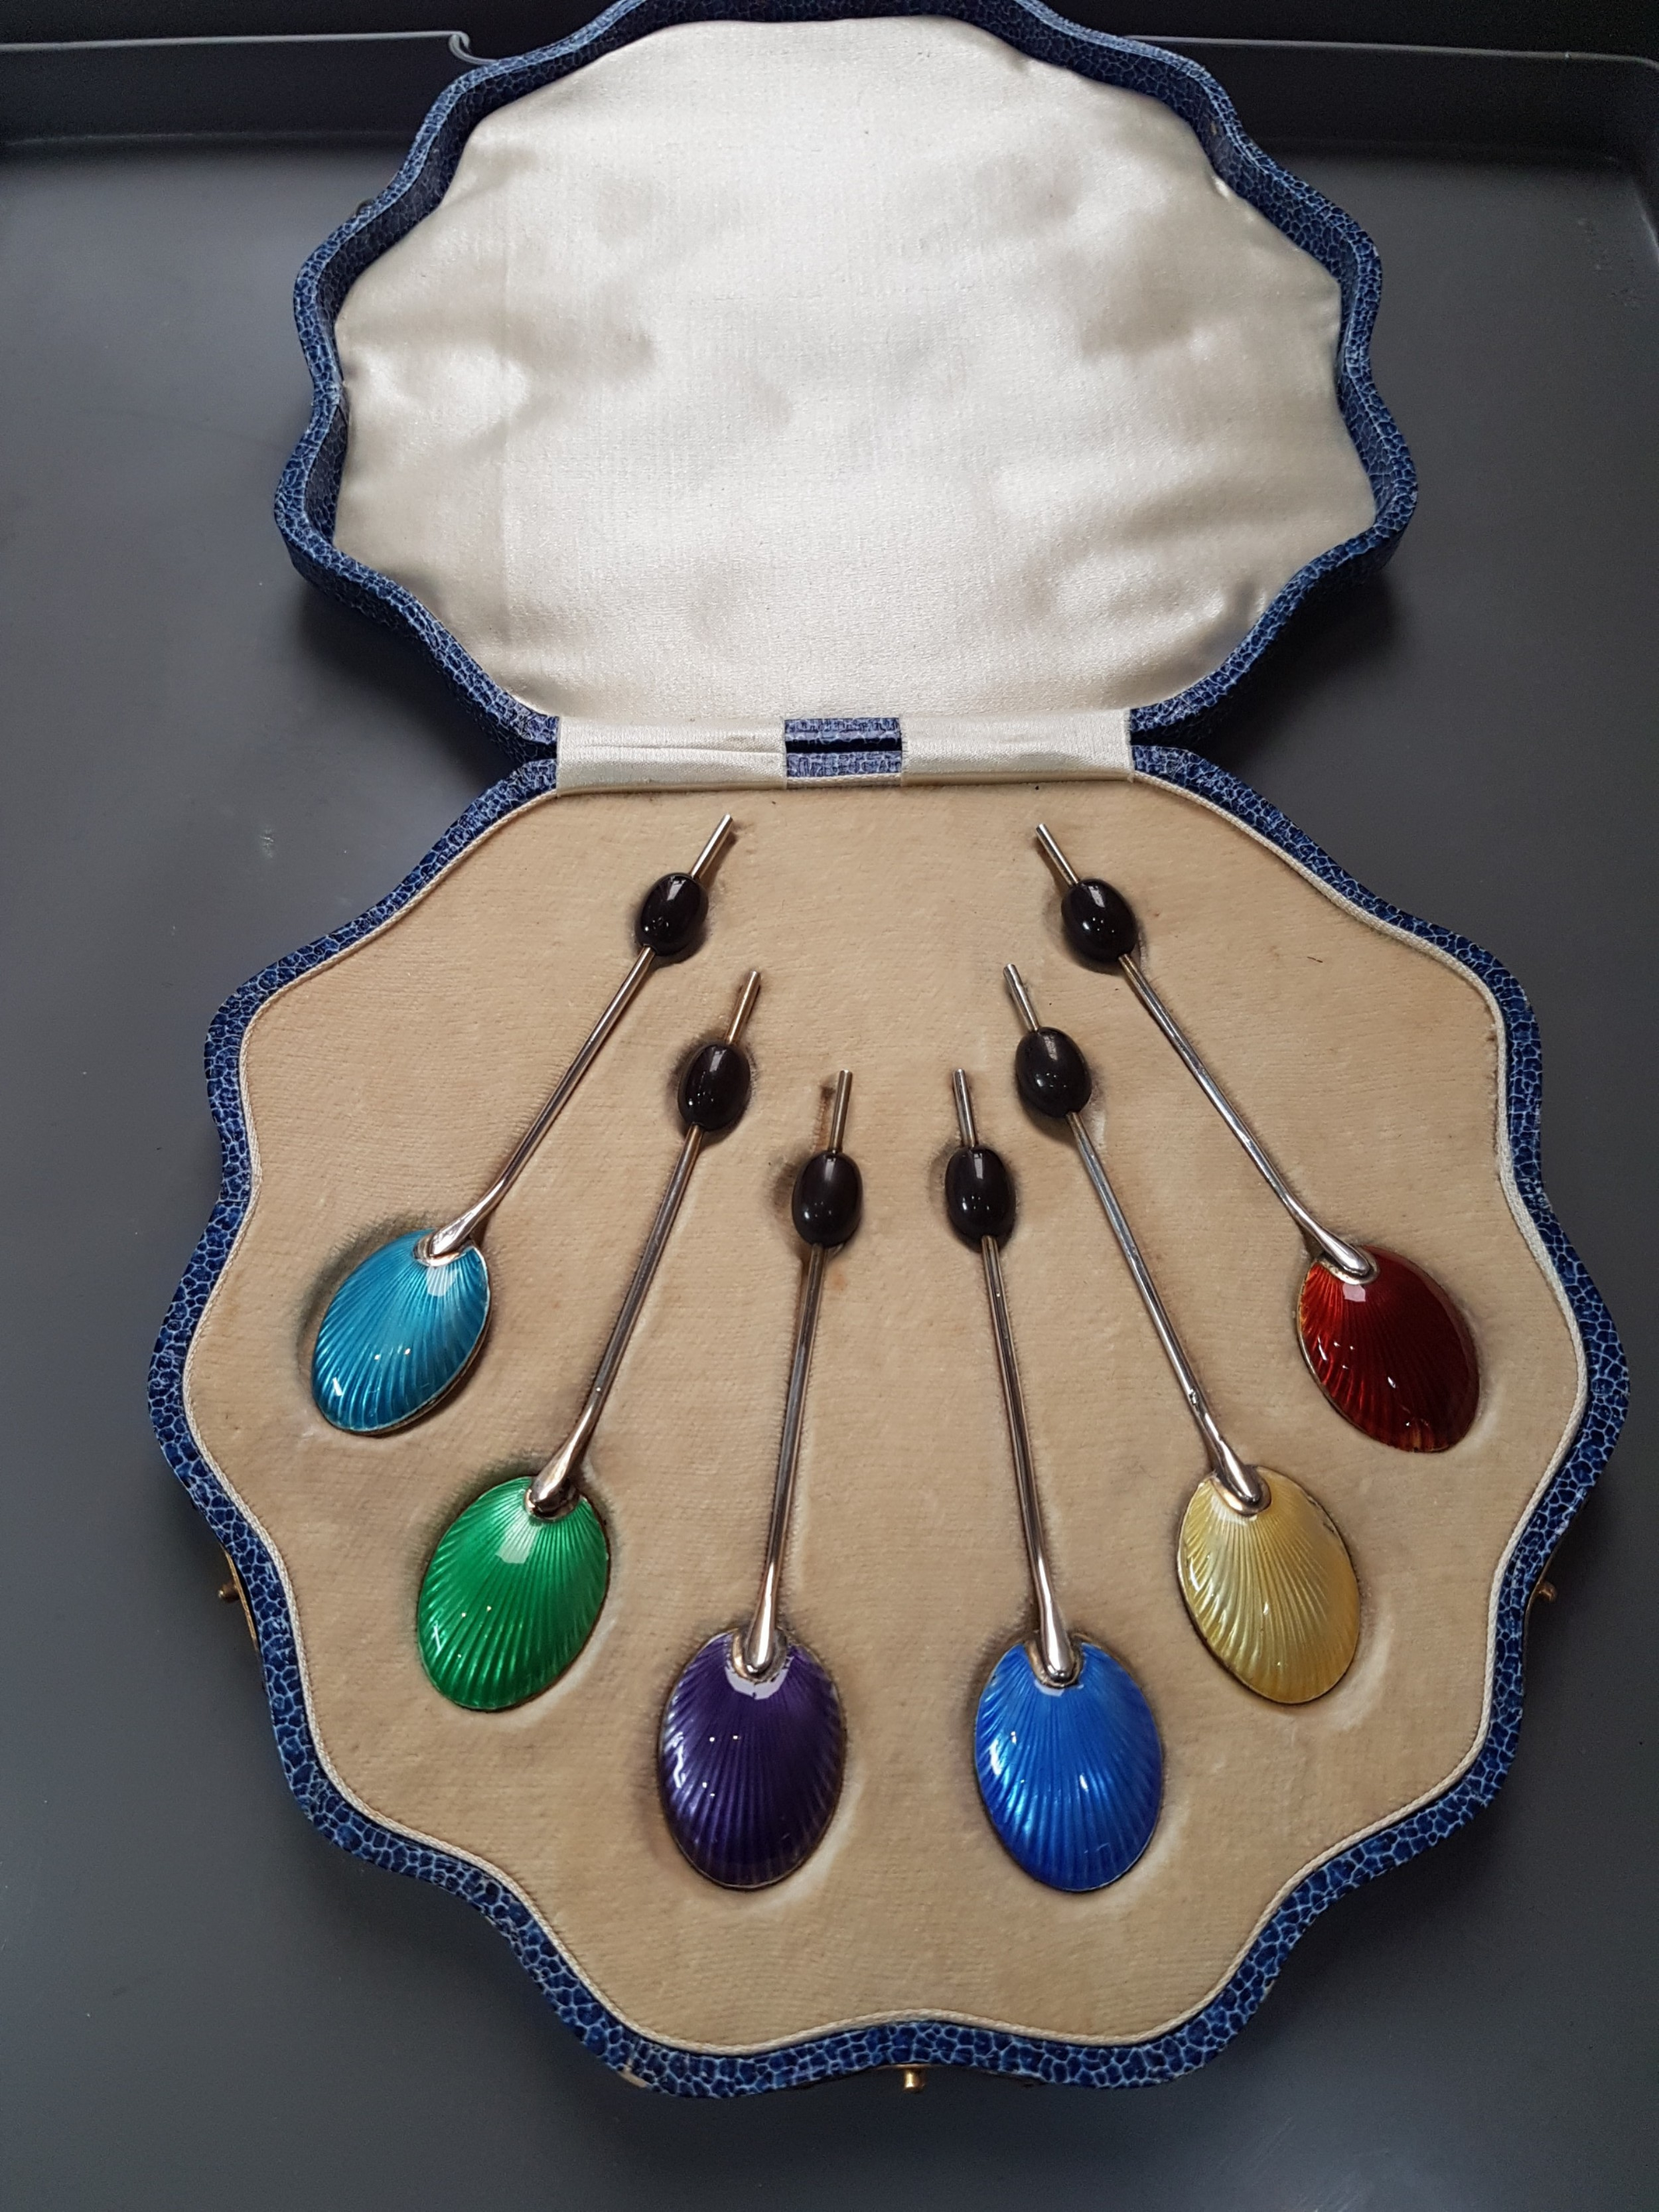 boxed set of silver and enamel spoons